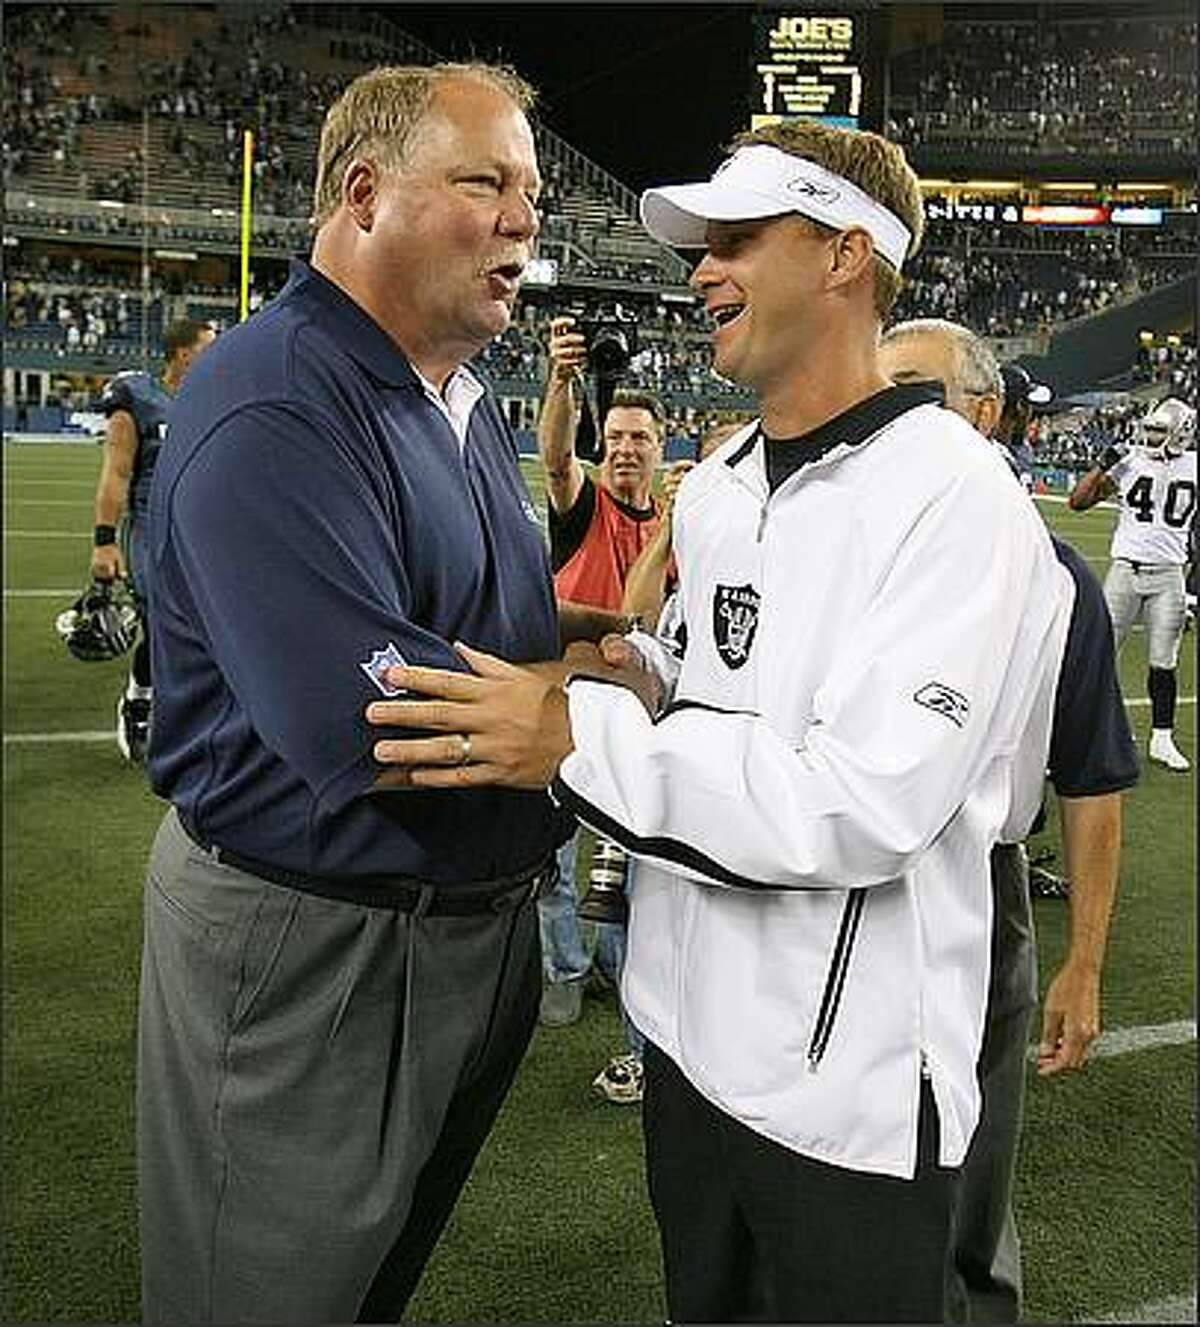 Seattle Seahawks head coach Mike Holmgren meets with Oakland Raiders Lane Kiffin after the Seahawks 19-14 win at Qwest Field in Seattle, Wash., Thursday August 30, 2007. Seattle Post-Intelligencer Photo by Mike Urban